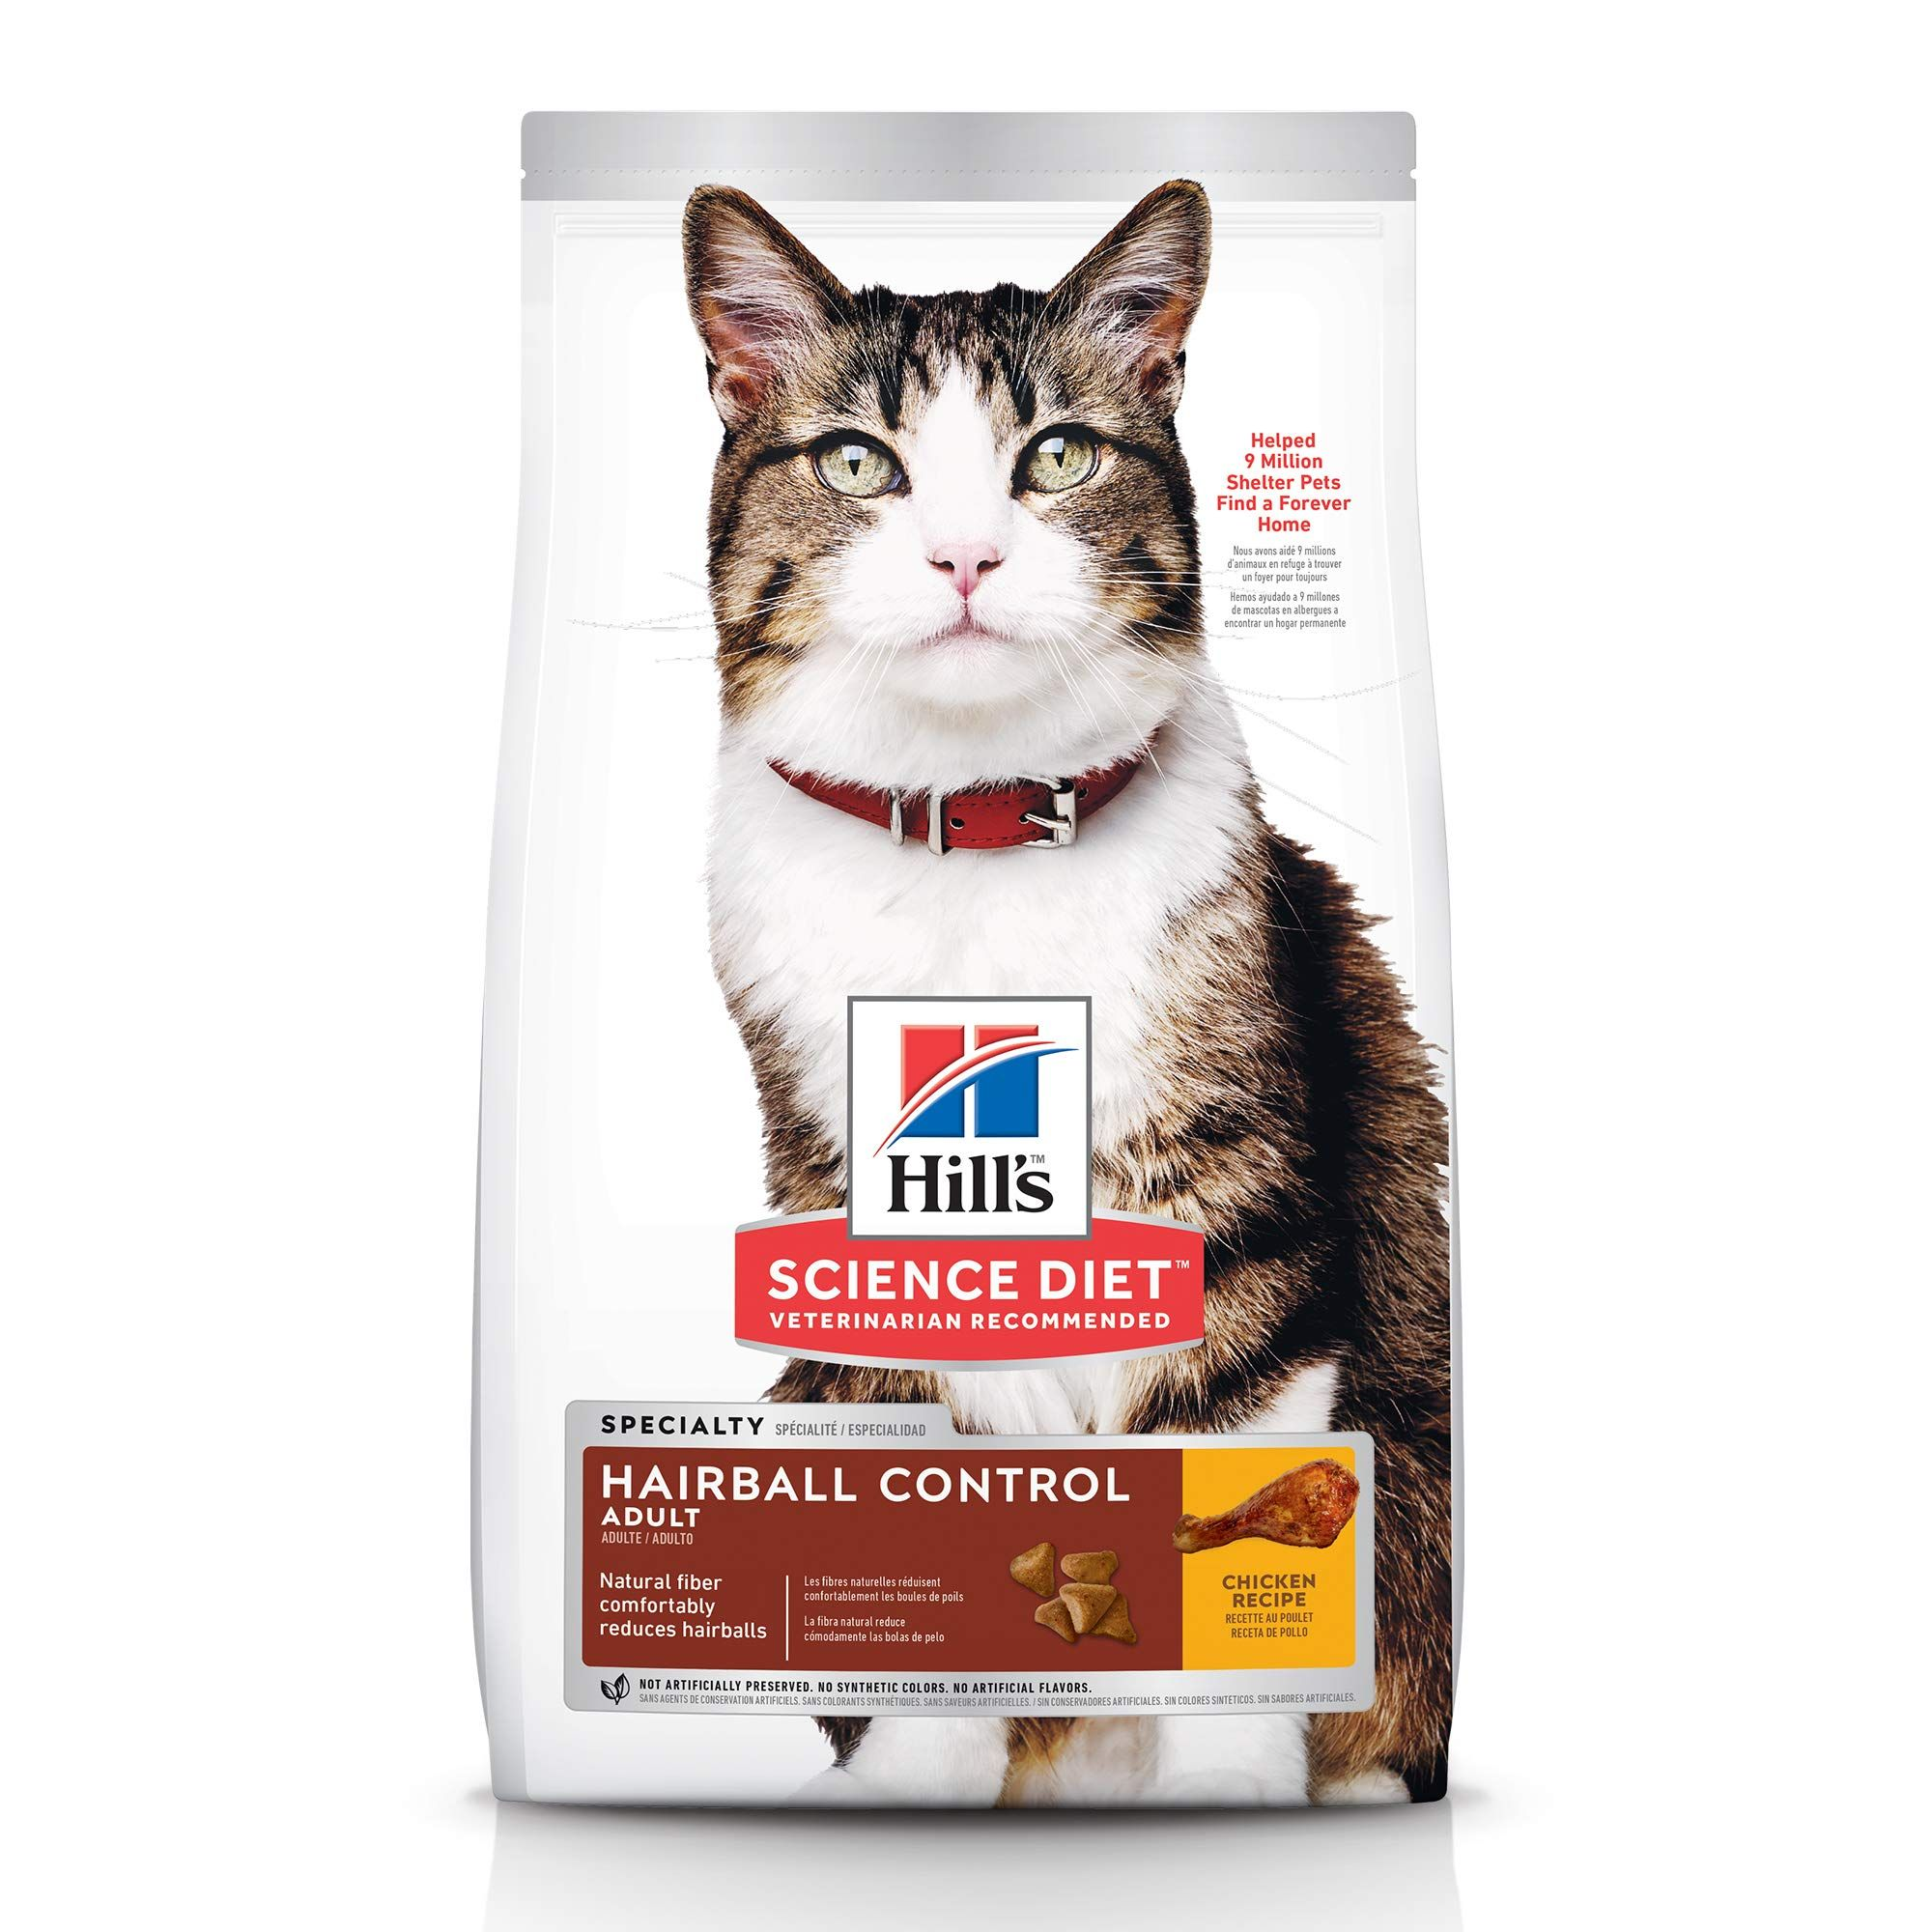 Pin On Cat Health And Supplies